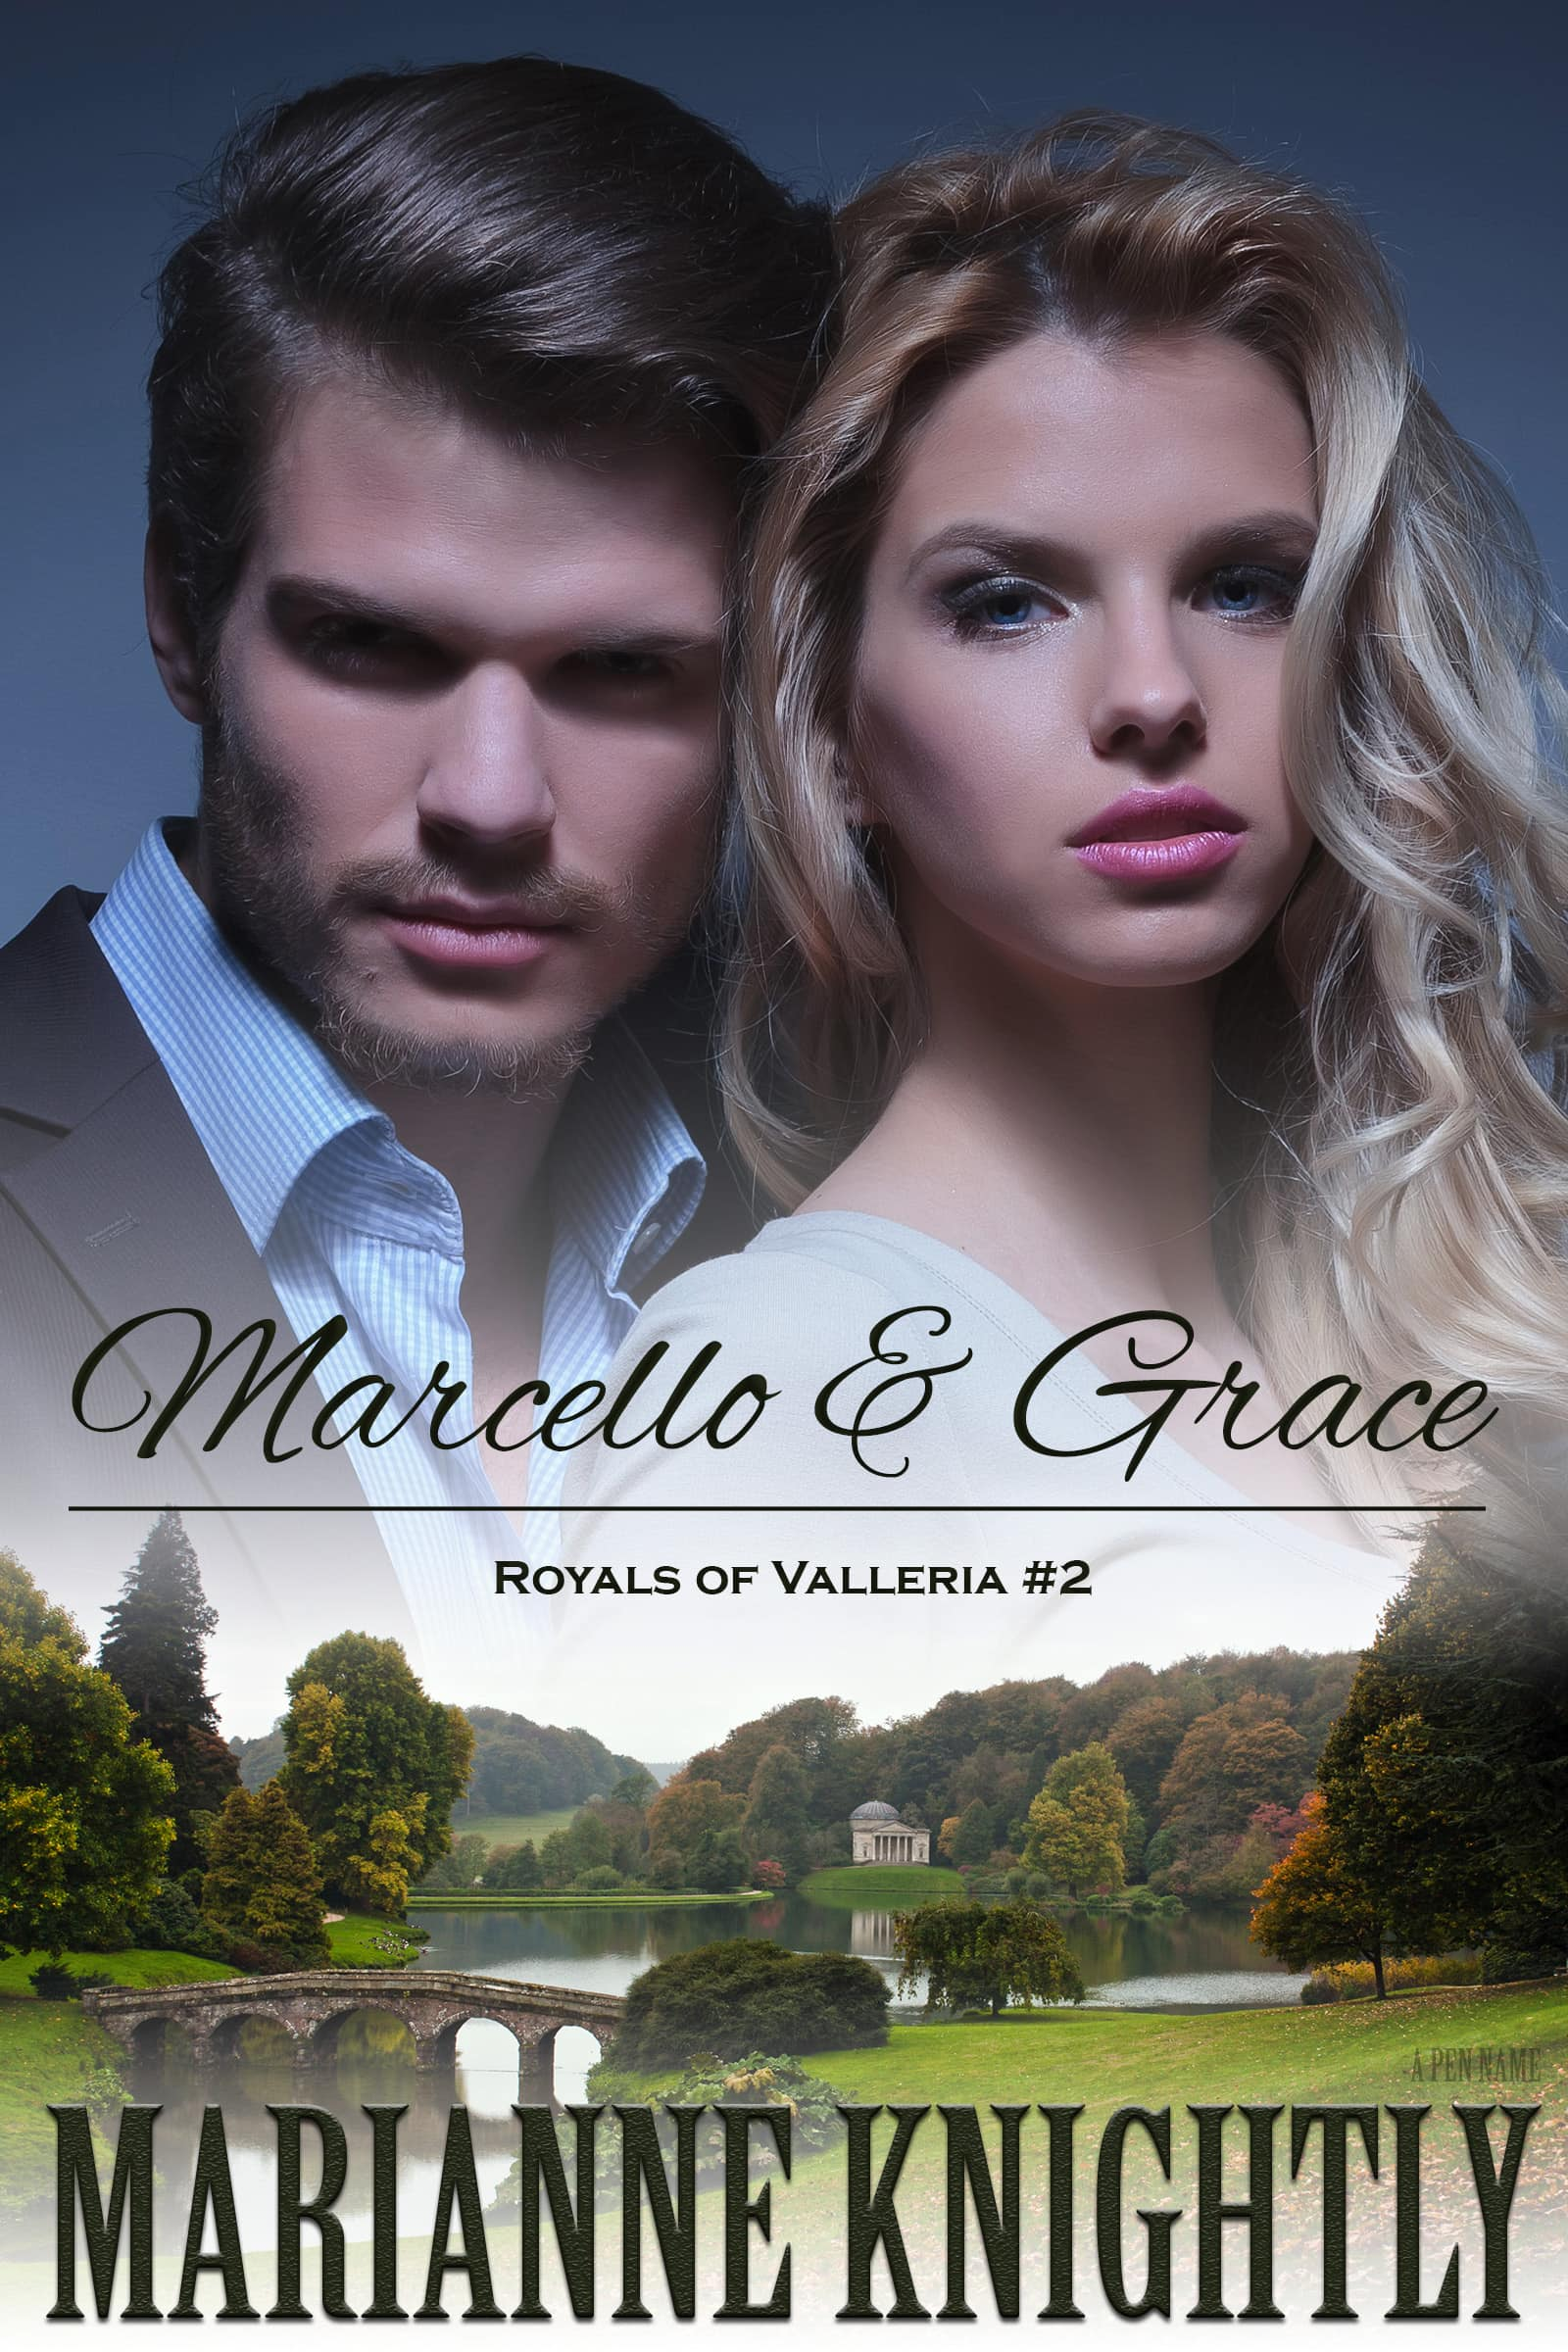 Marcello & Grace (Royals of Valleria #2)